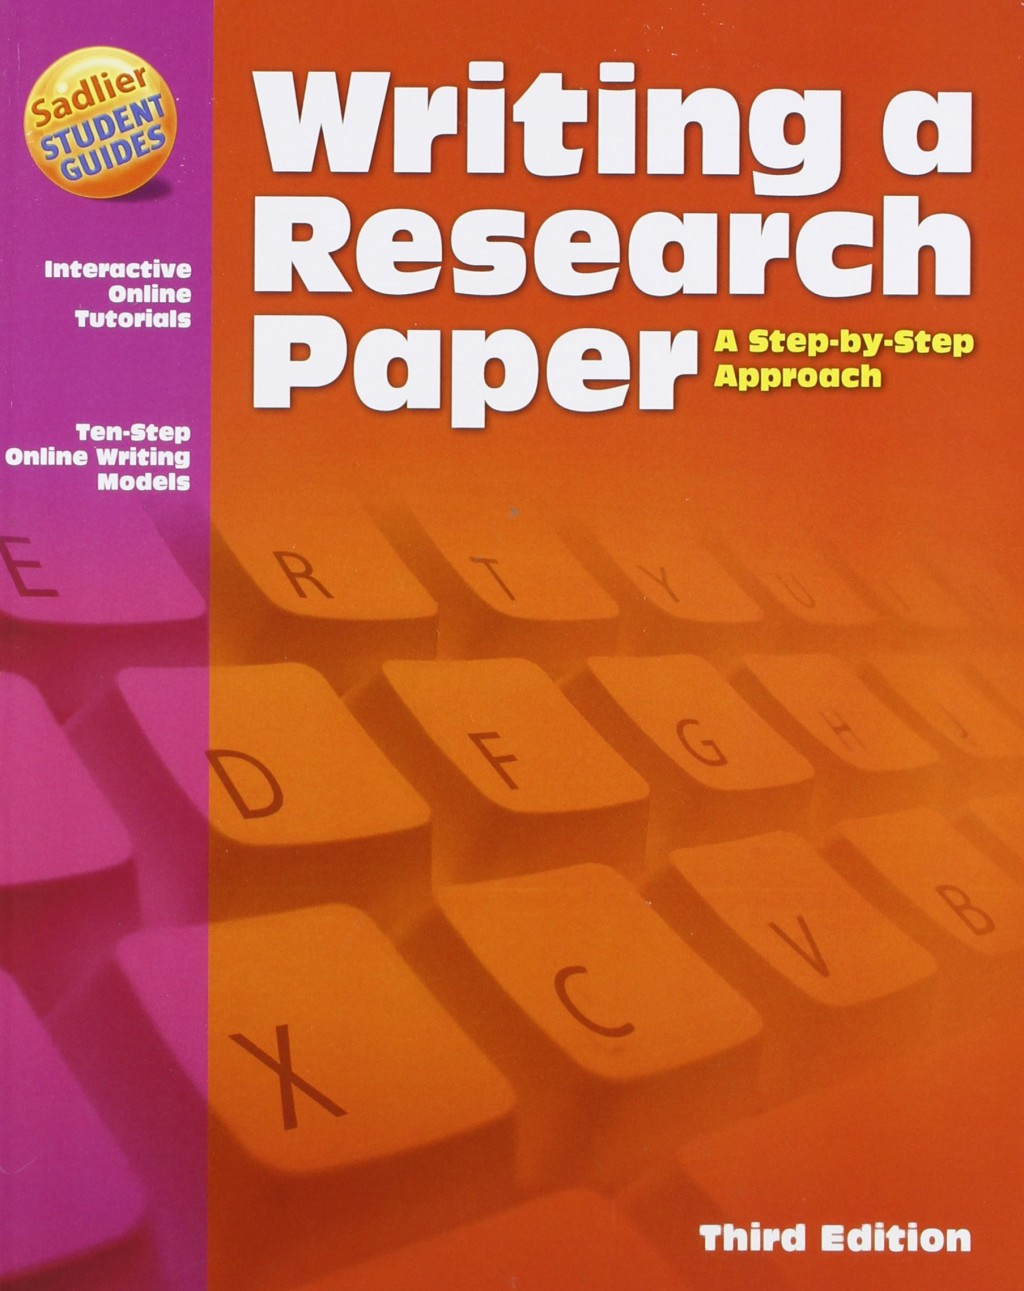 028 81uqfpthpml Research Paper Writing Fascinating Of Sample Introduction Steps A Pdf Large